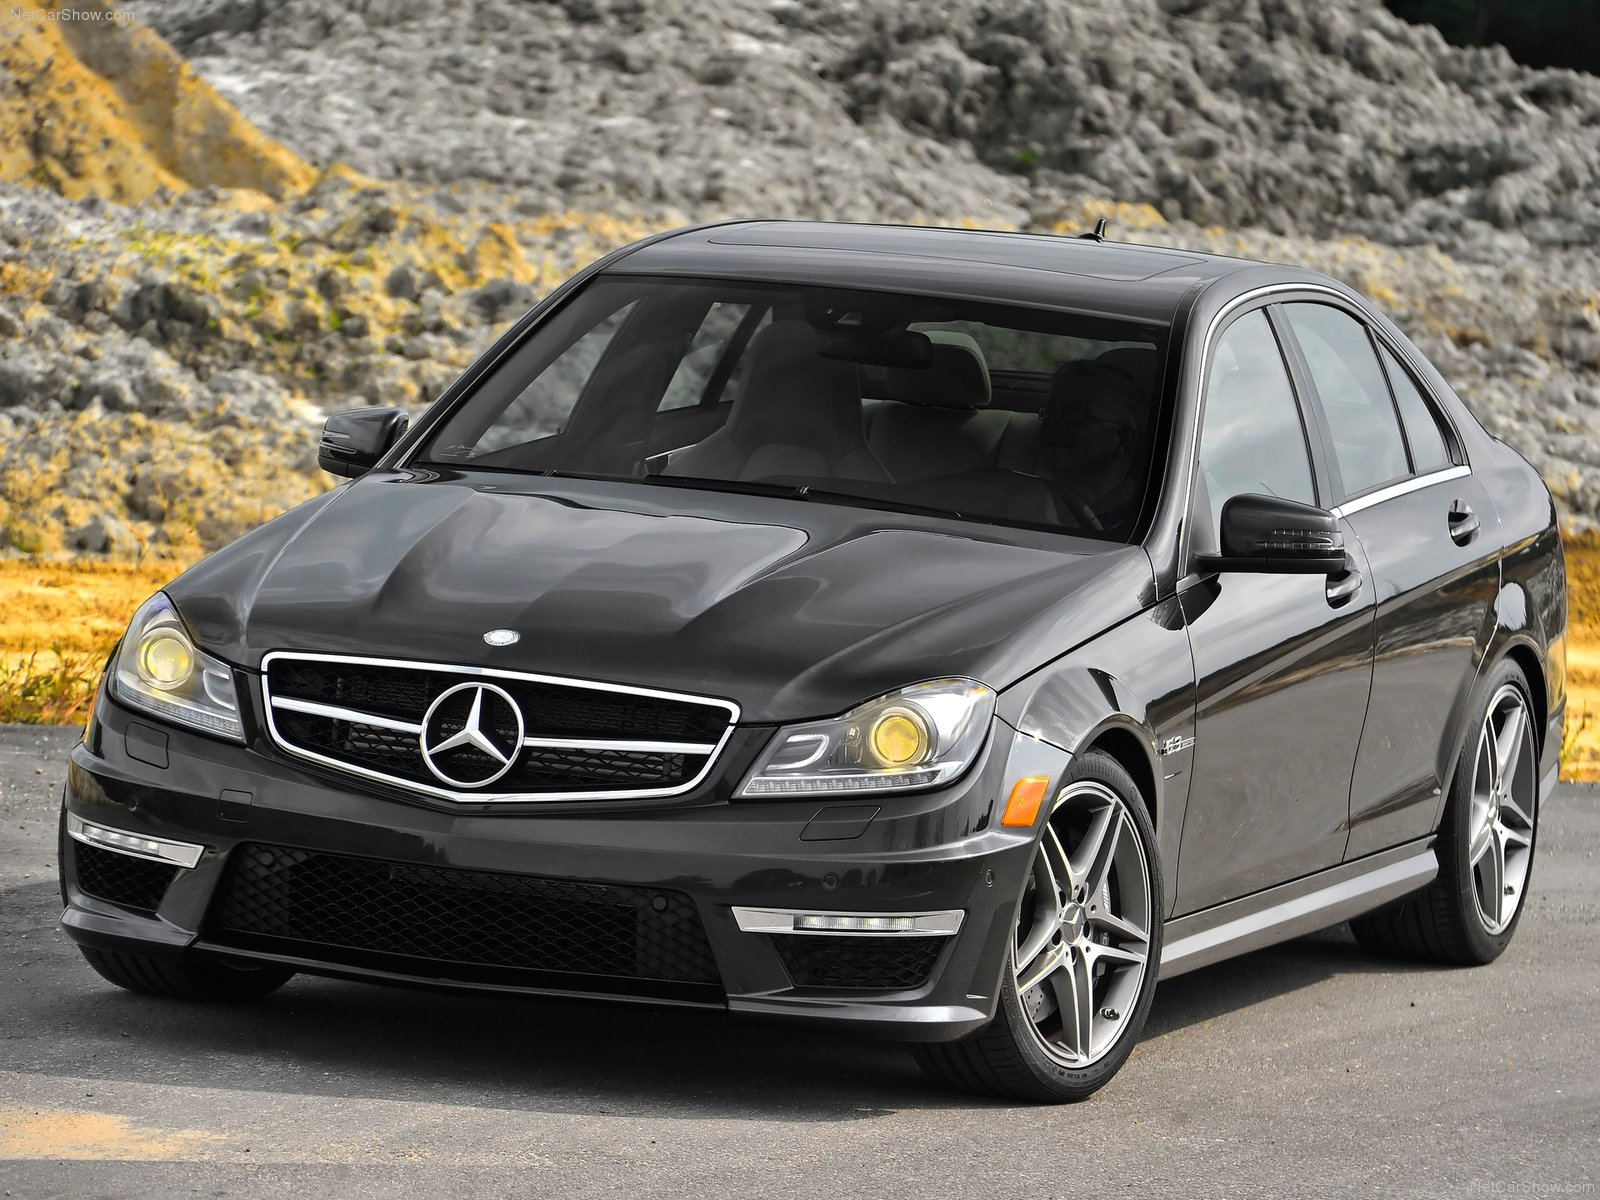 mercedes benz c class amg picture 84833 mercedes benz. Black Bedroom Furniture Sets. Home Design Ideas